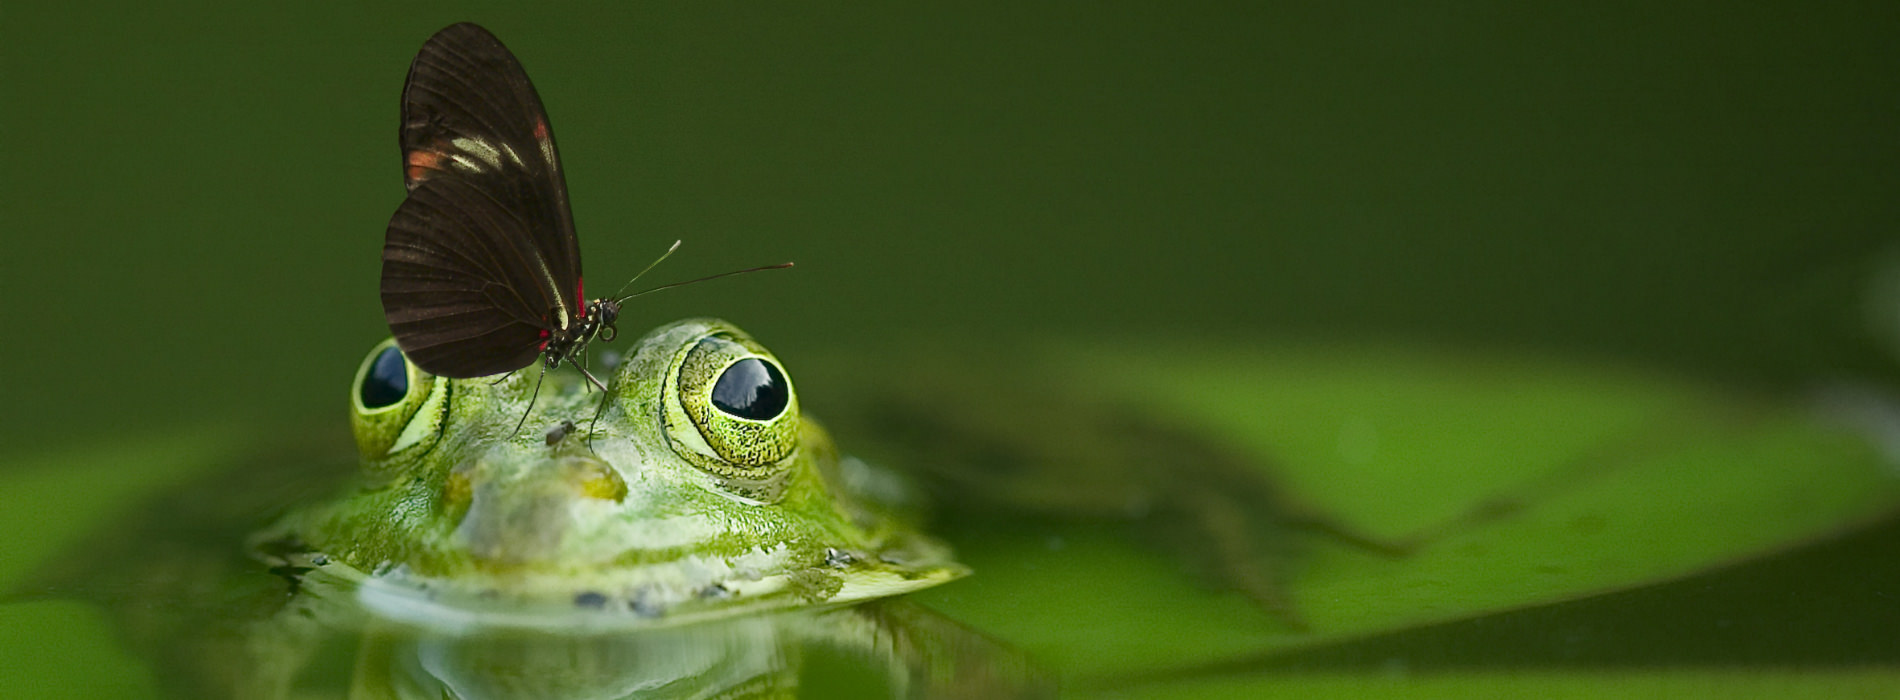 A butterfly perches atop the head of a partially-submerged frog